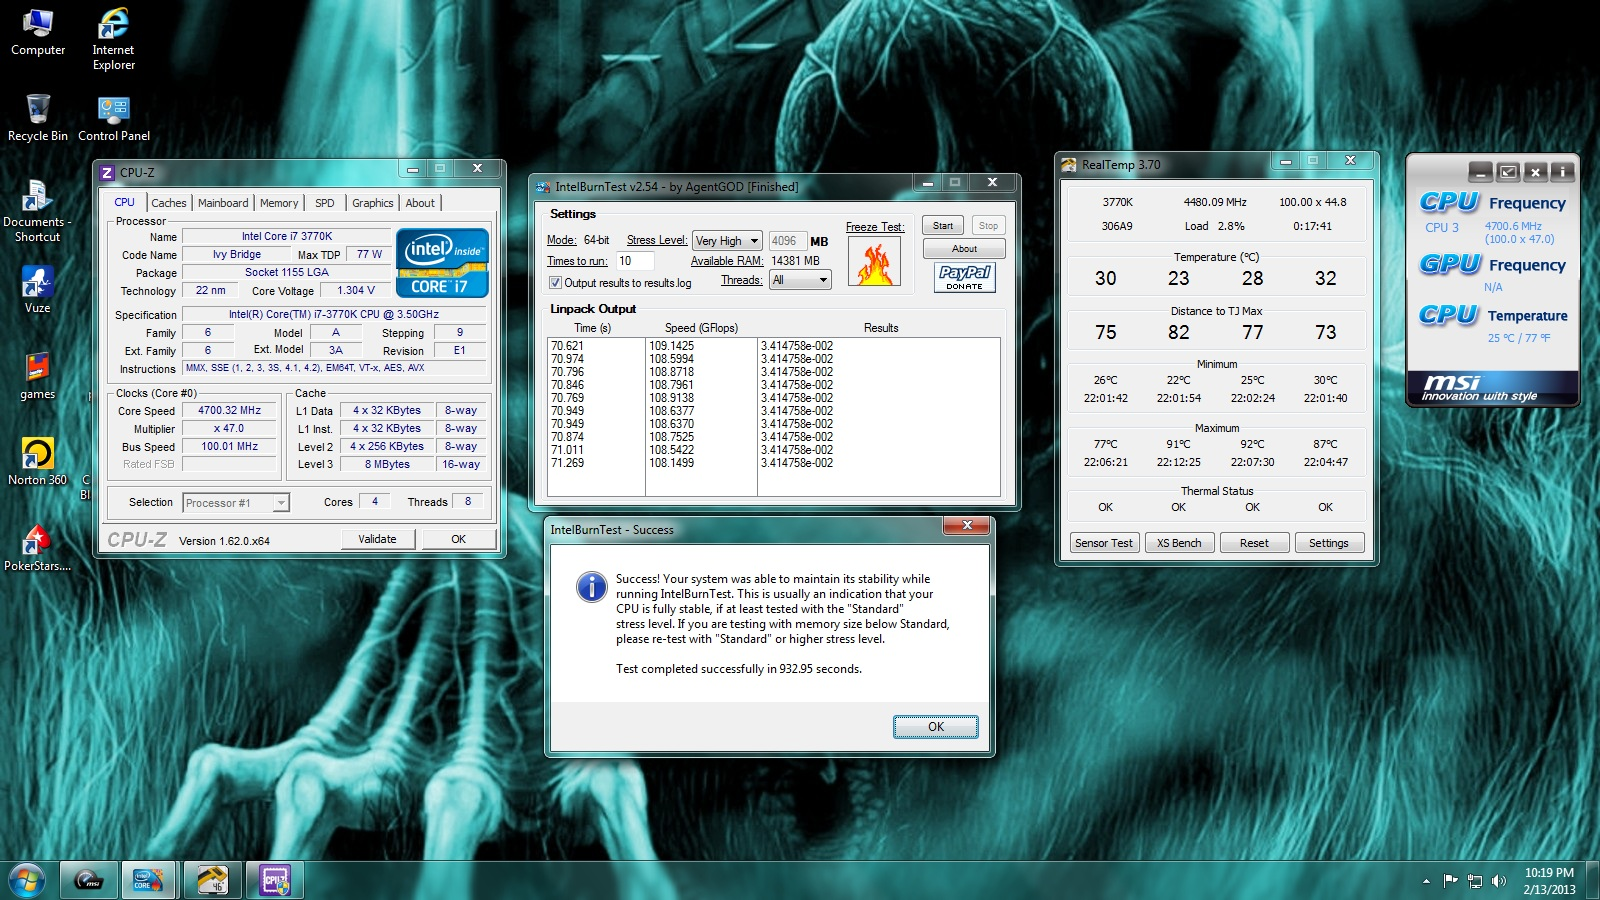 Overclock net - An Overclocking Community - View Single Post